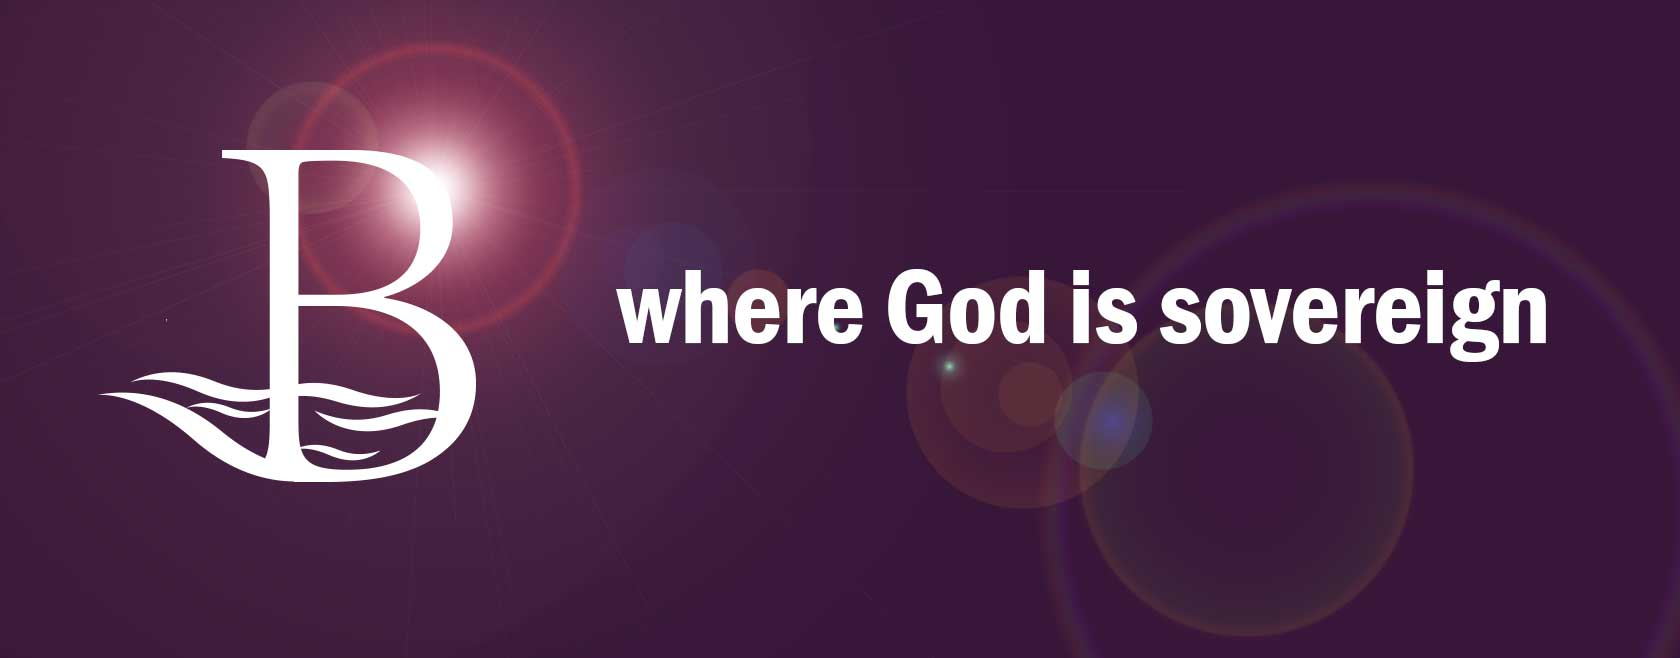 Bethel--is-where-God-is-sovereign.